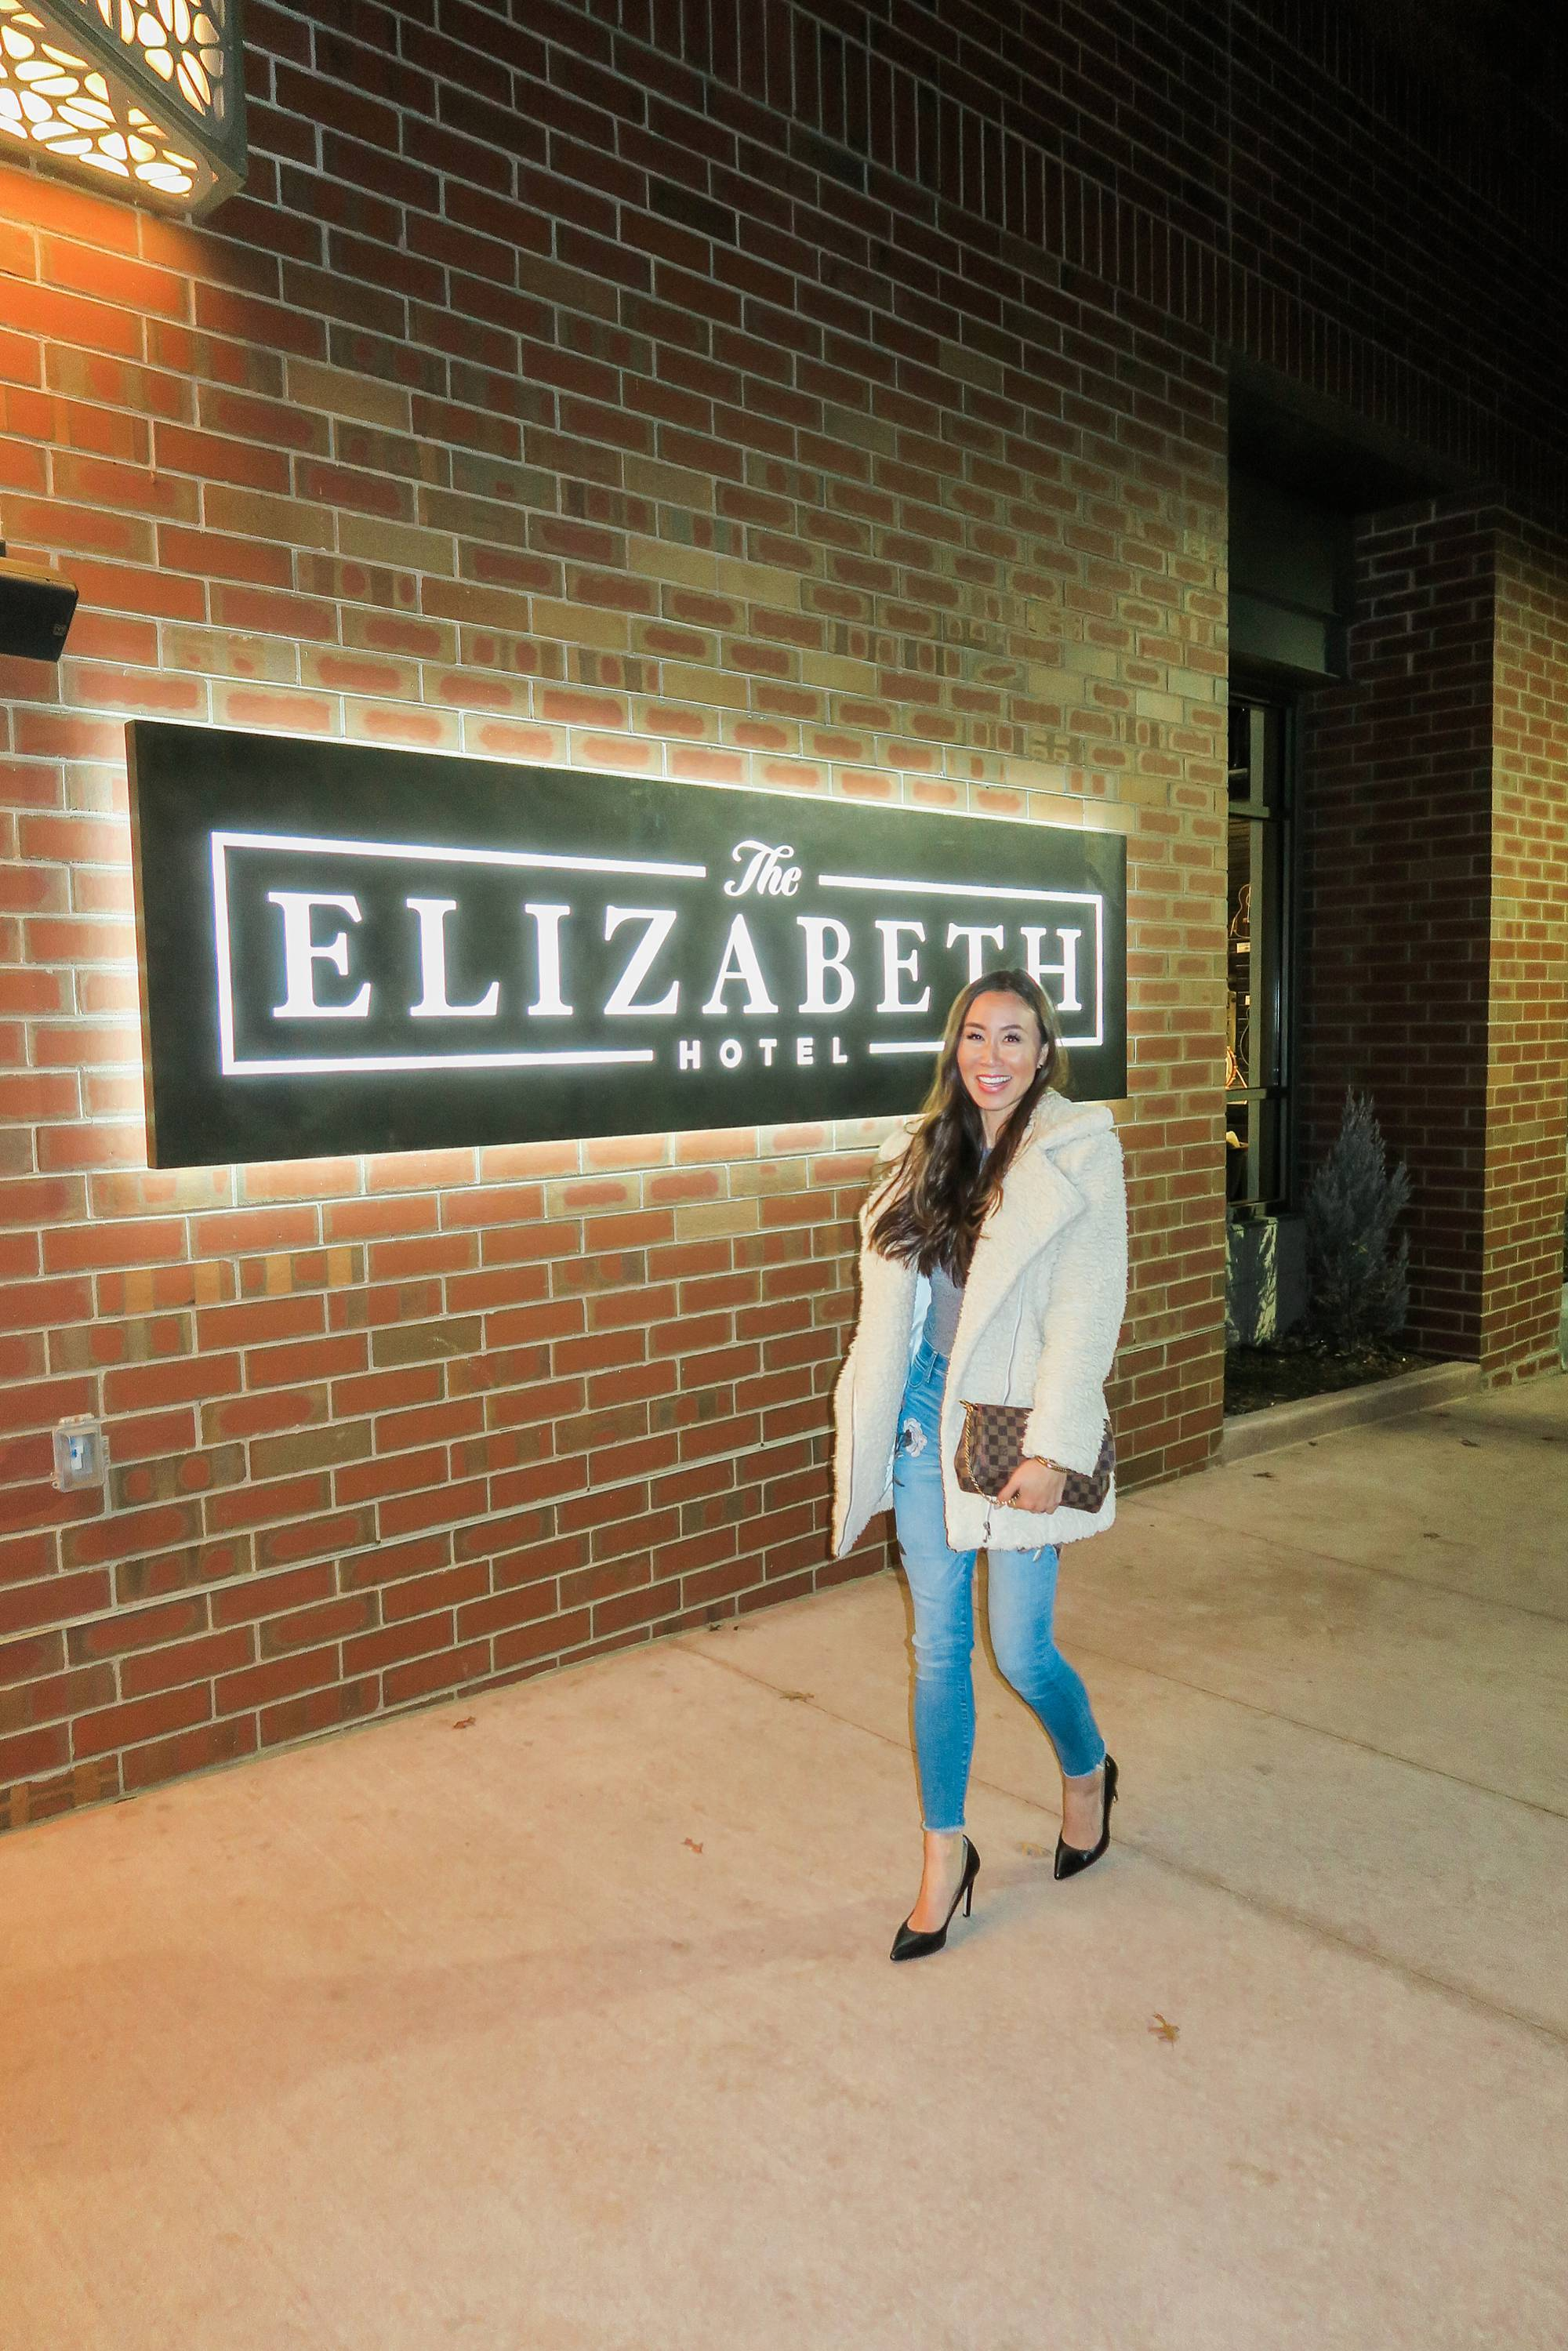 the Elizabeth hotel in Fort Collins, Colorado, lifestyle blogger Diana Elizabeth walking in front of the hotel sign